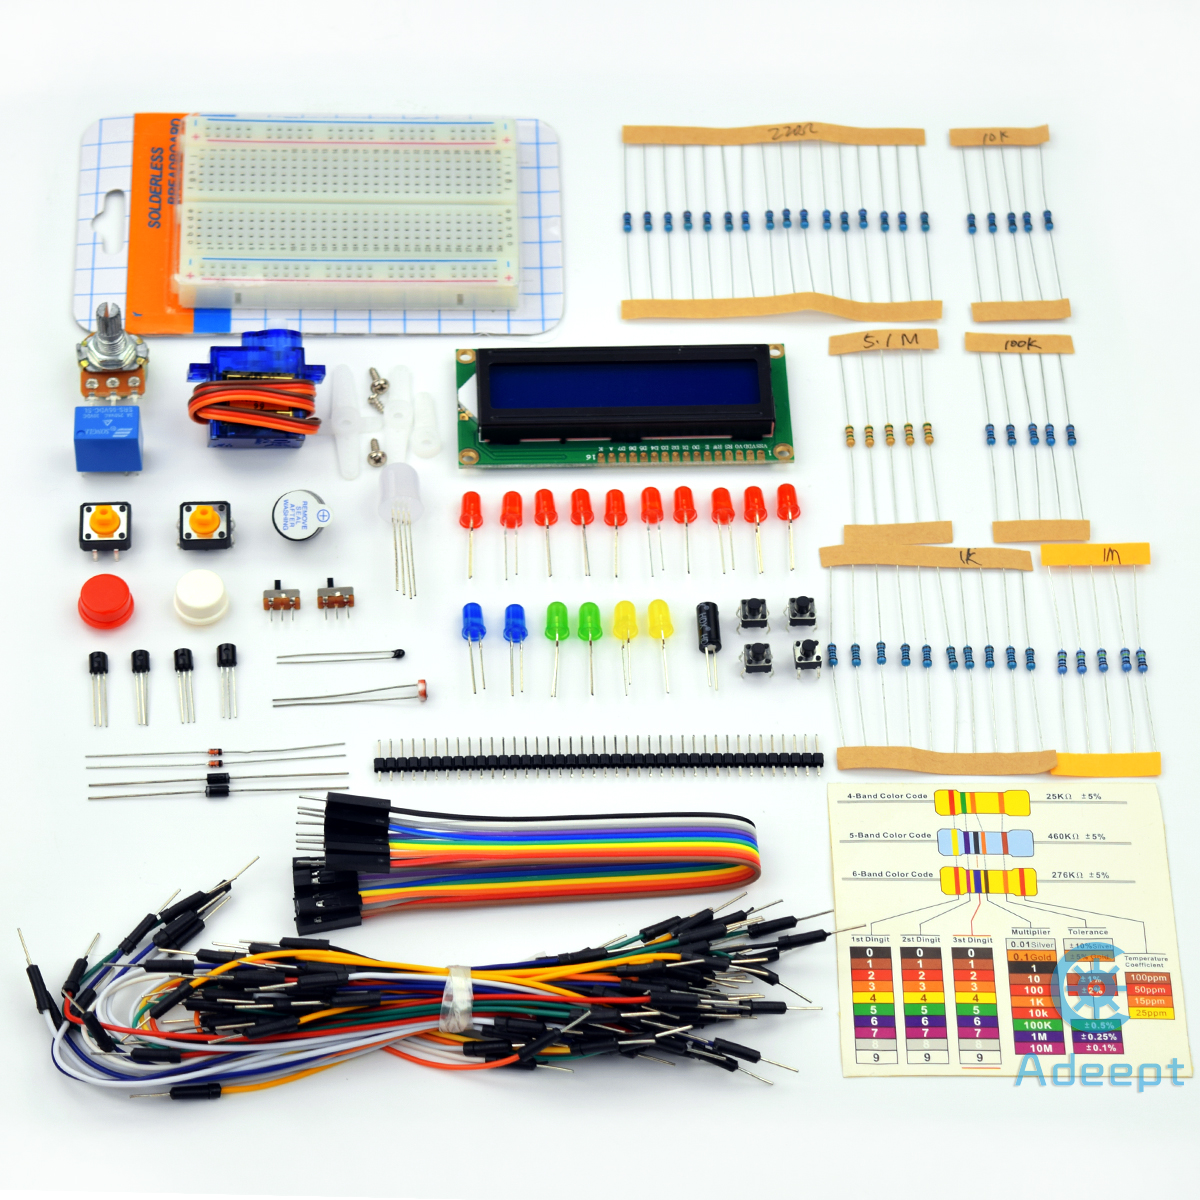 Adeept Project 1602 LCD Starter Kit for Arduino UNO R3 Mega2560 Nano Servo  Relay LCD1602 Beginner/Starter Kit for Arduino with PDF Guidebook